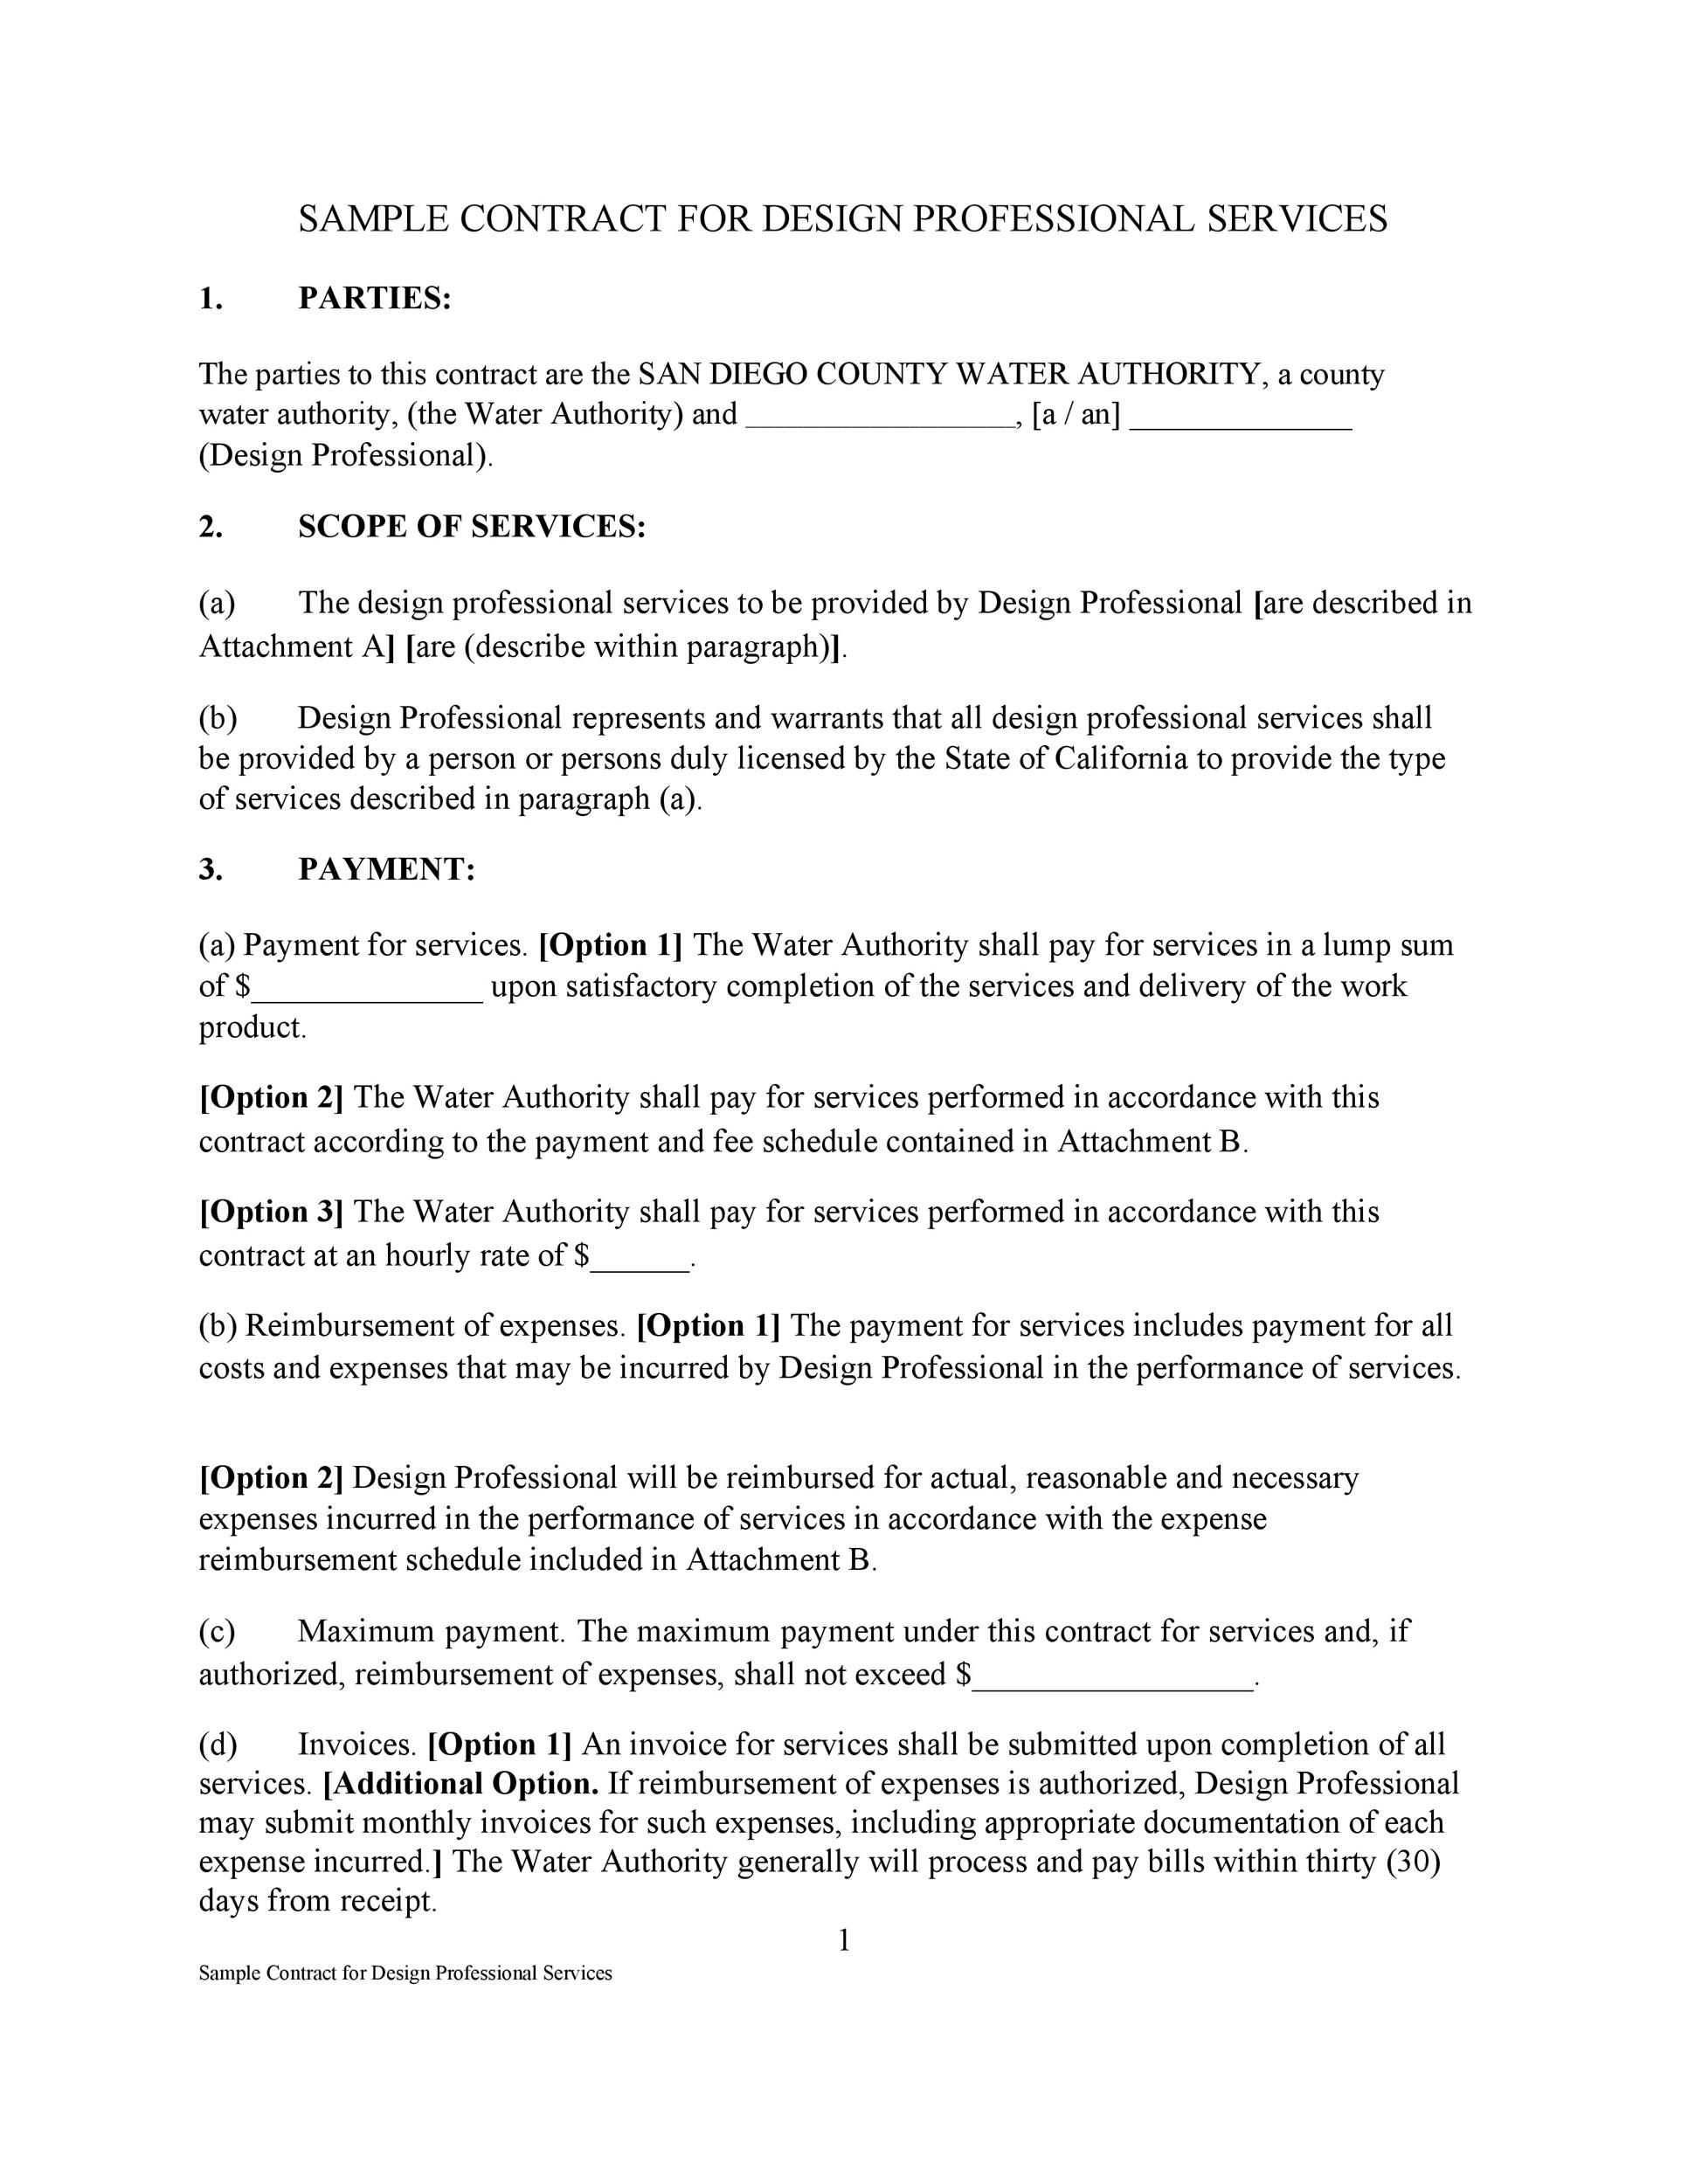 Professional Service Agreement Templates Contracts - Fee for service contract template